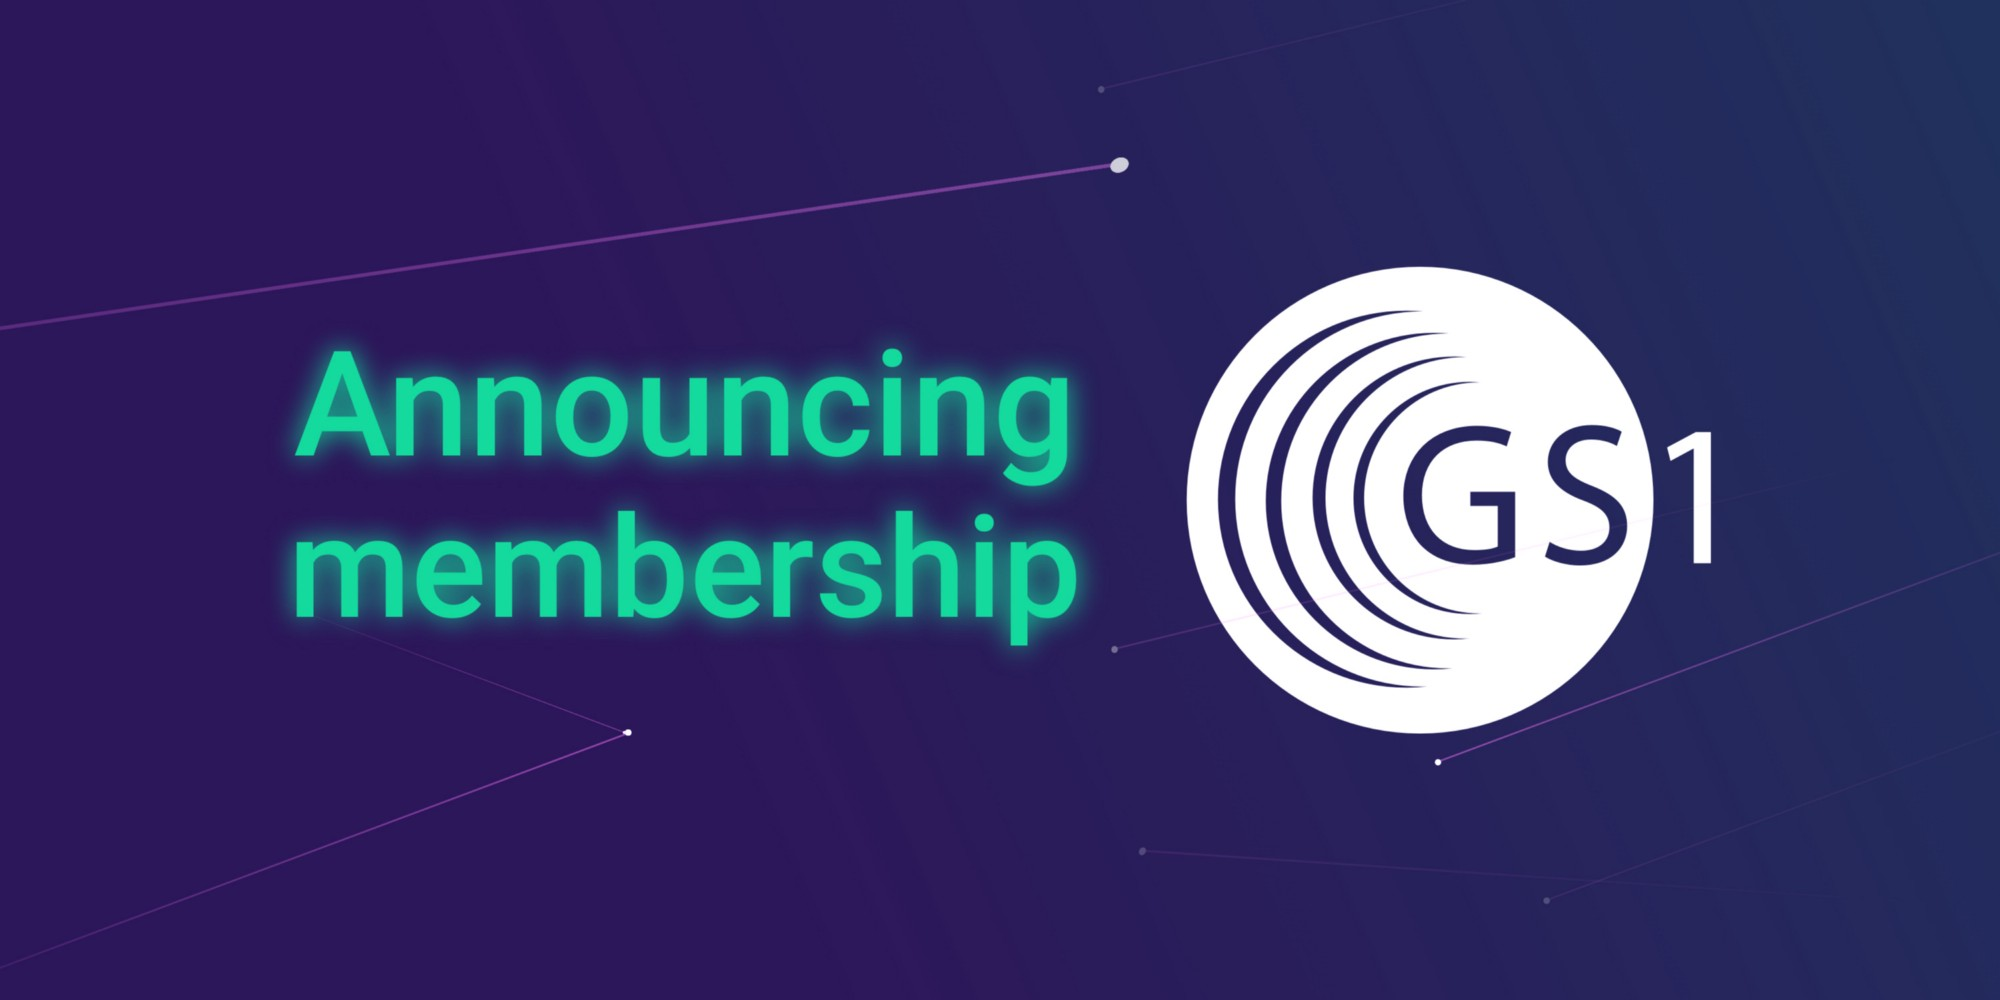 Gs1 Membership Means The Origintrail Protocol Will Speak The Global Language Of Business